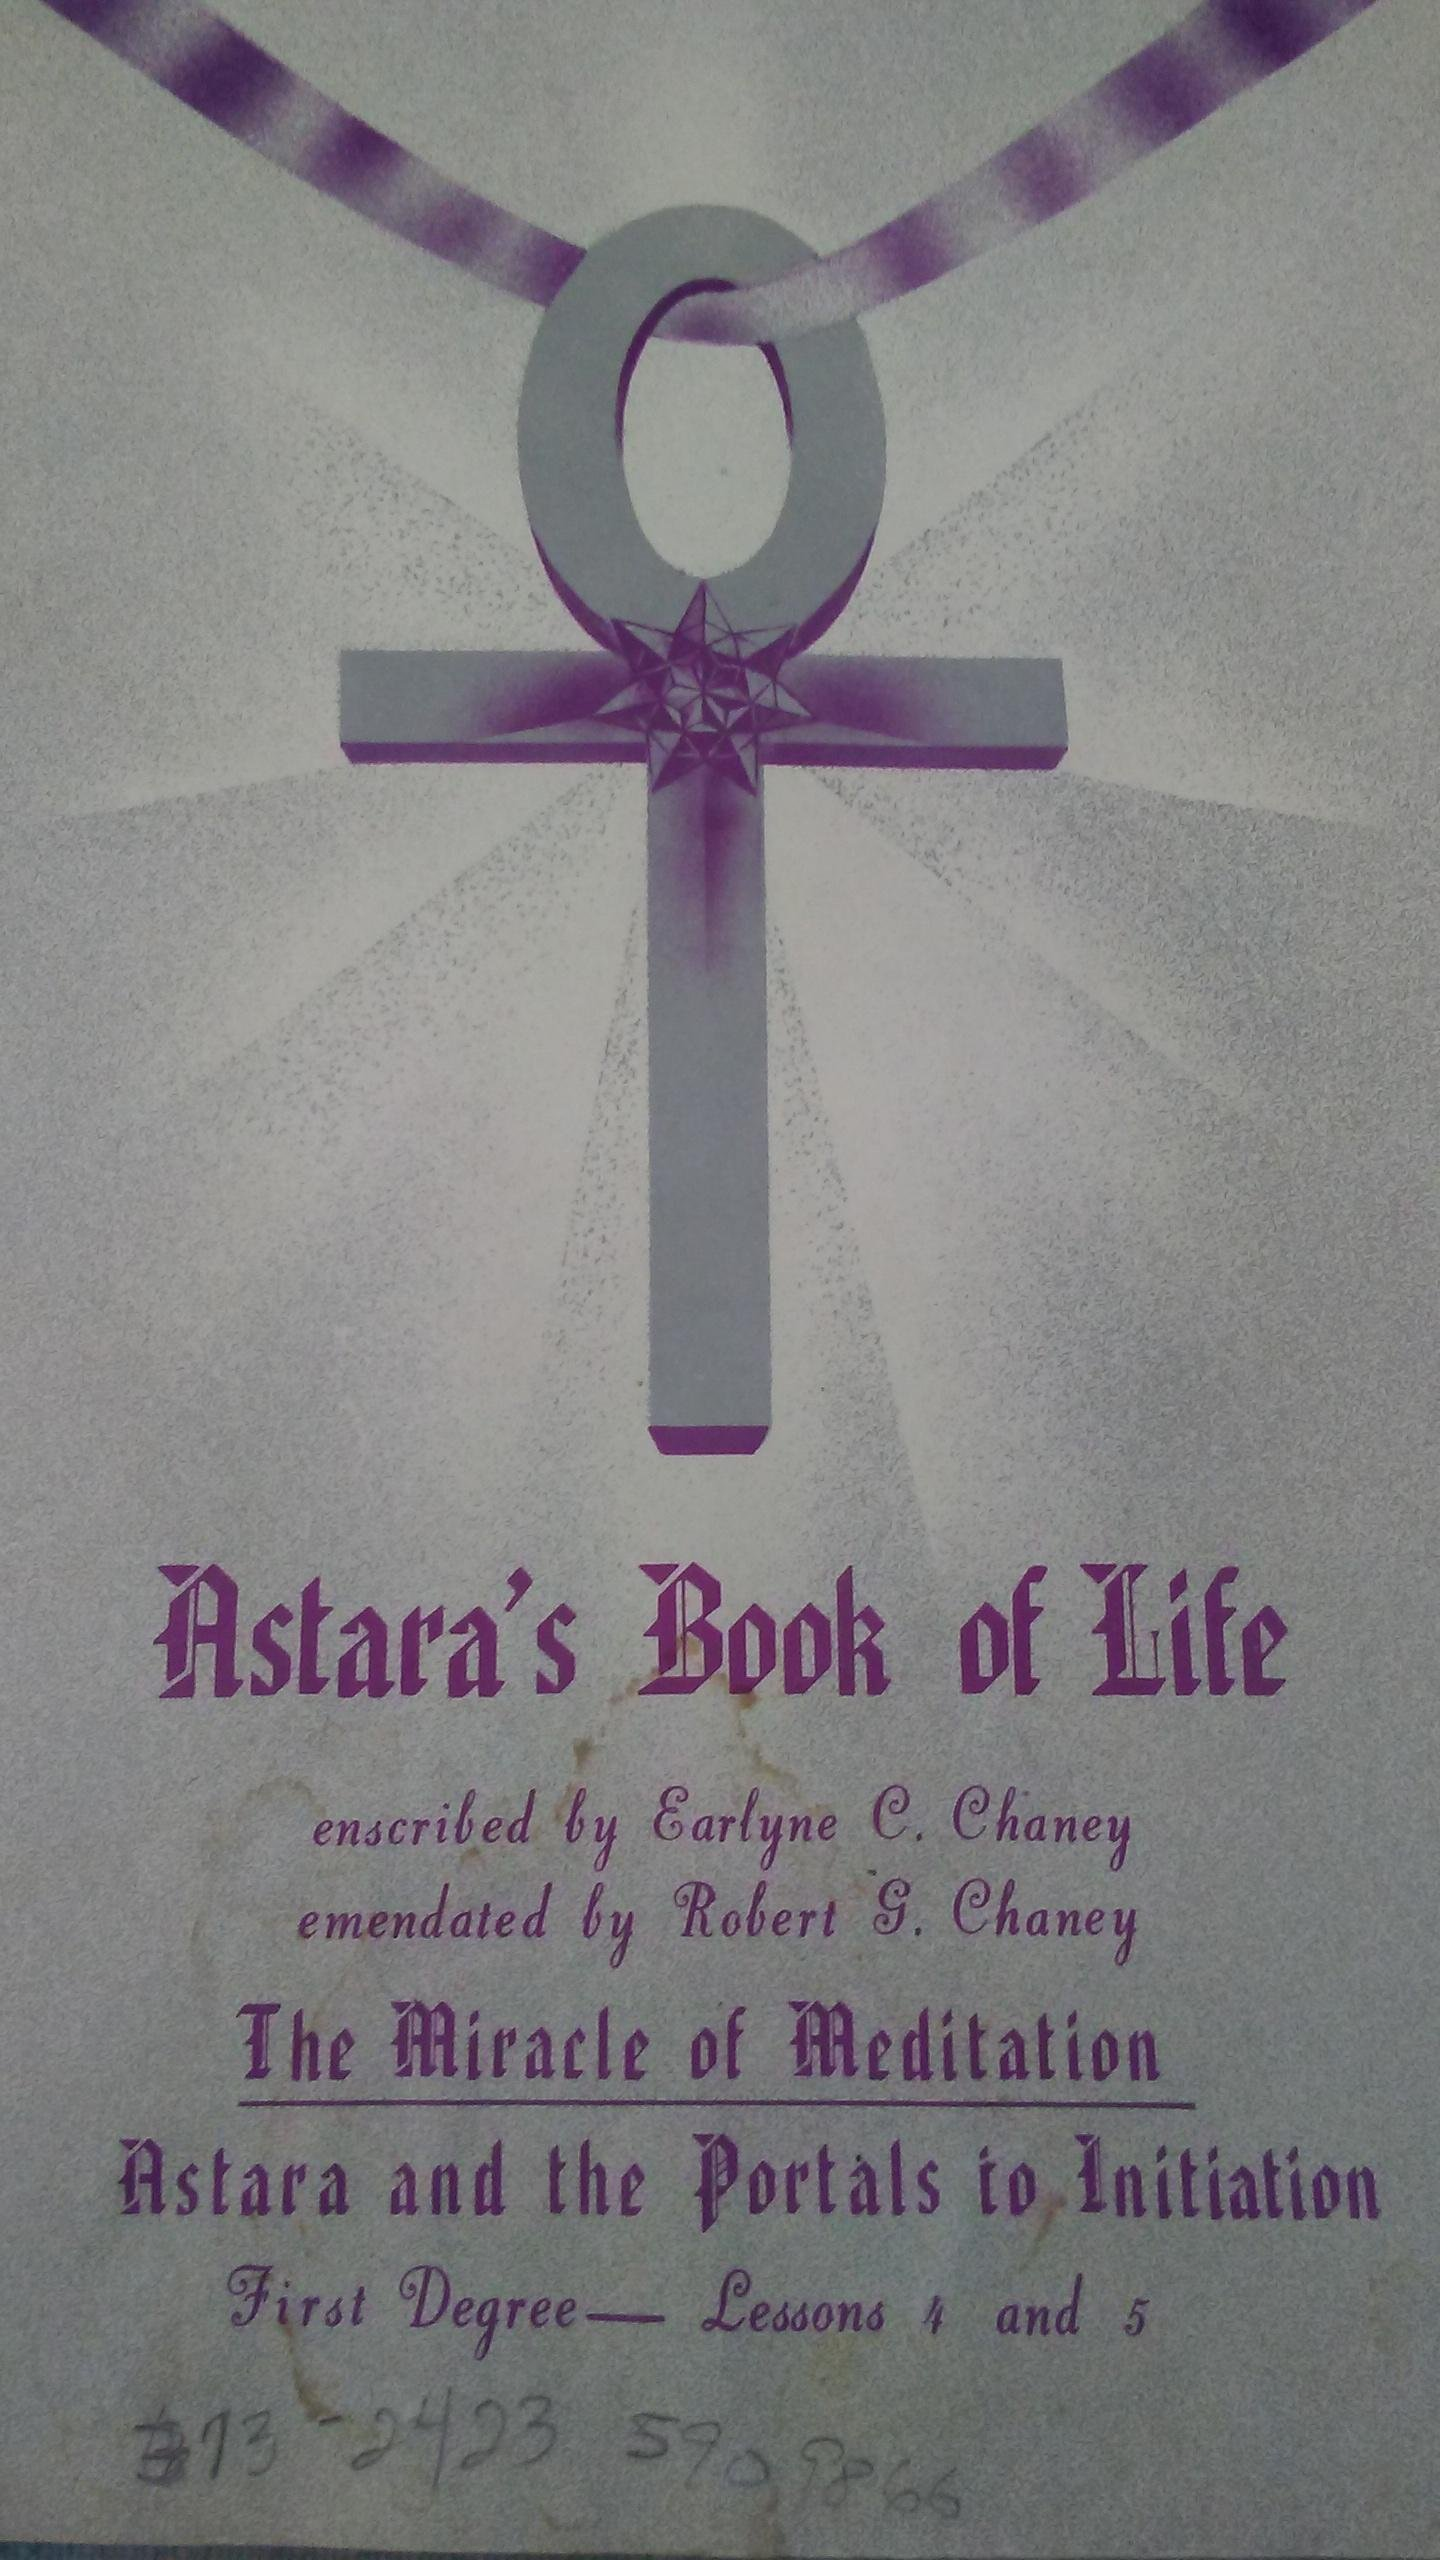 Astaras Book Of Life First Degree Lessons 4 And 5 The Miracle Of